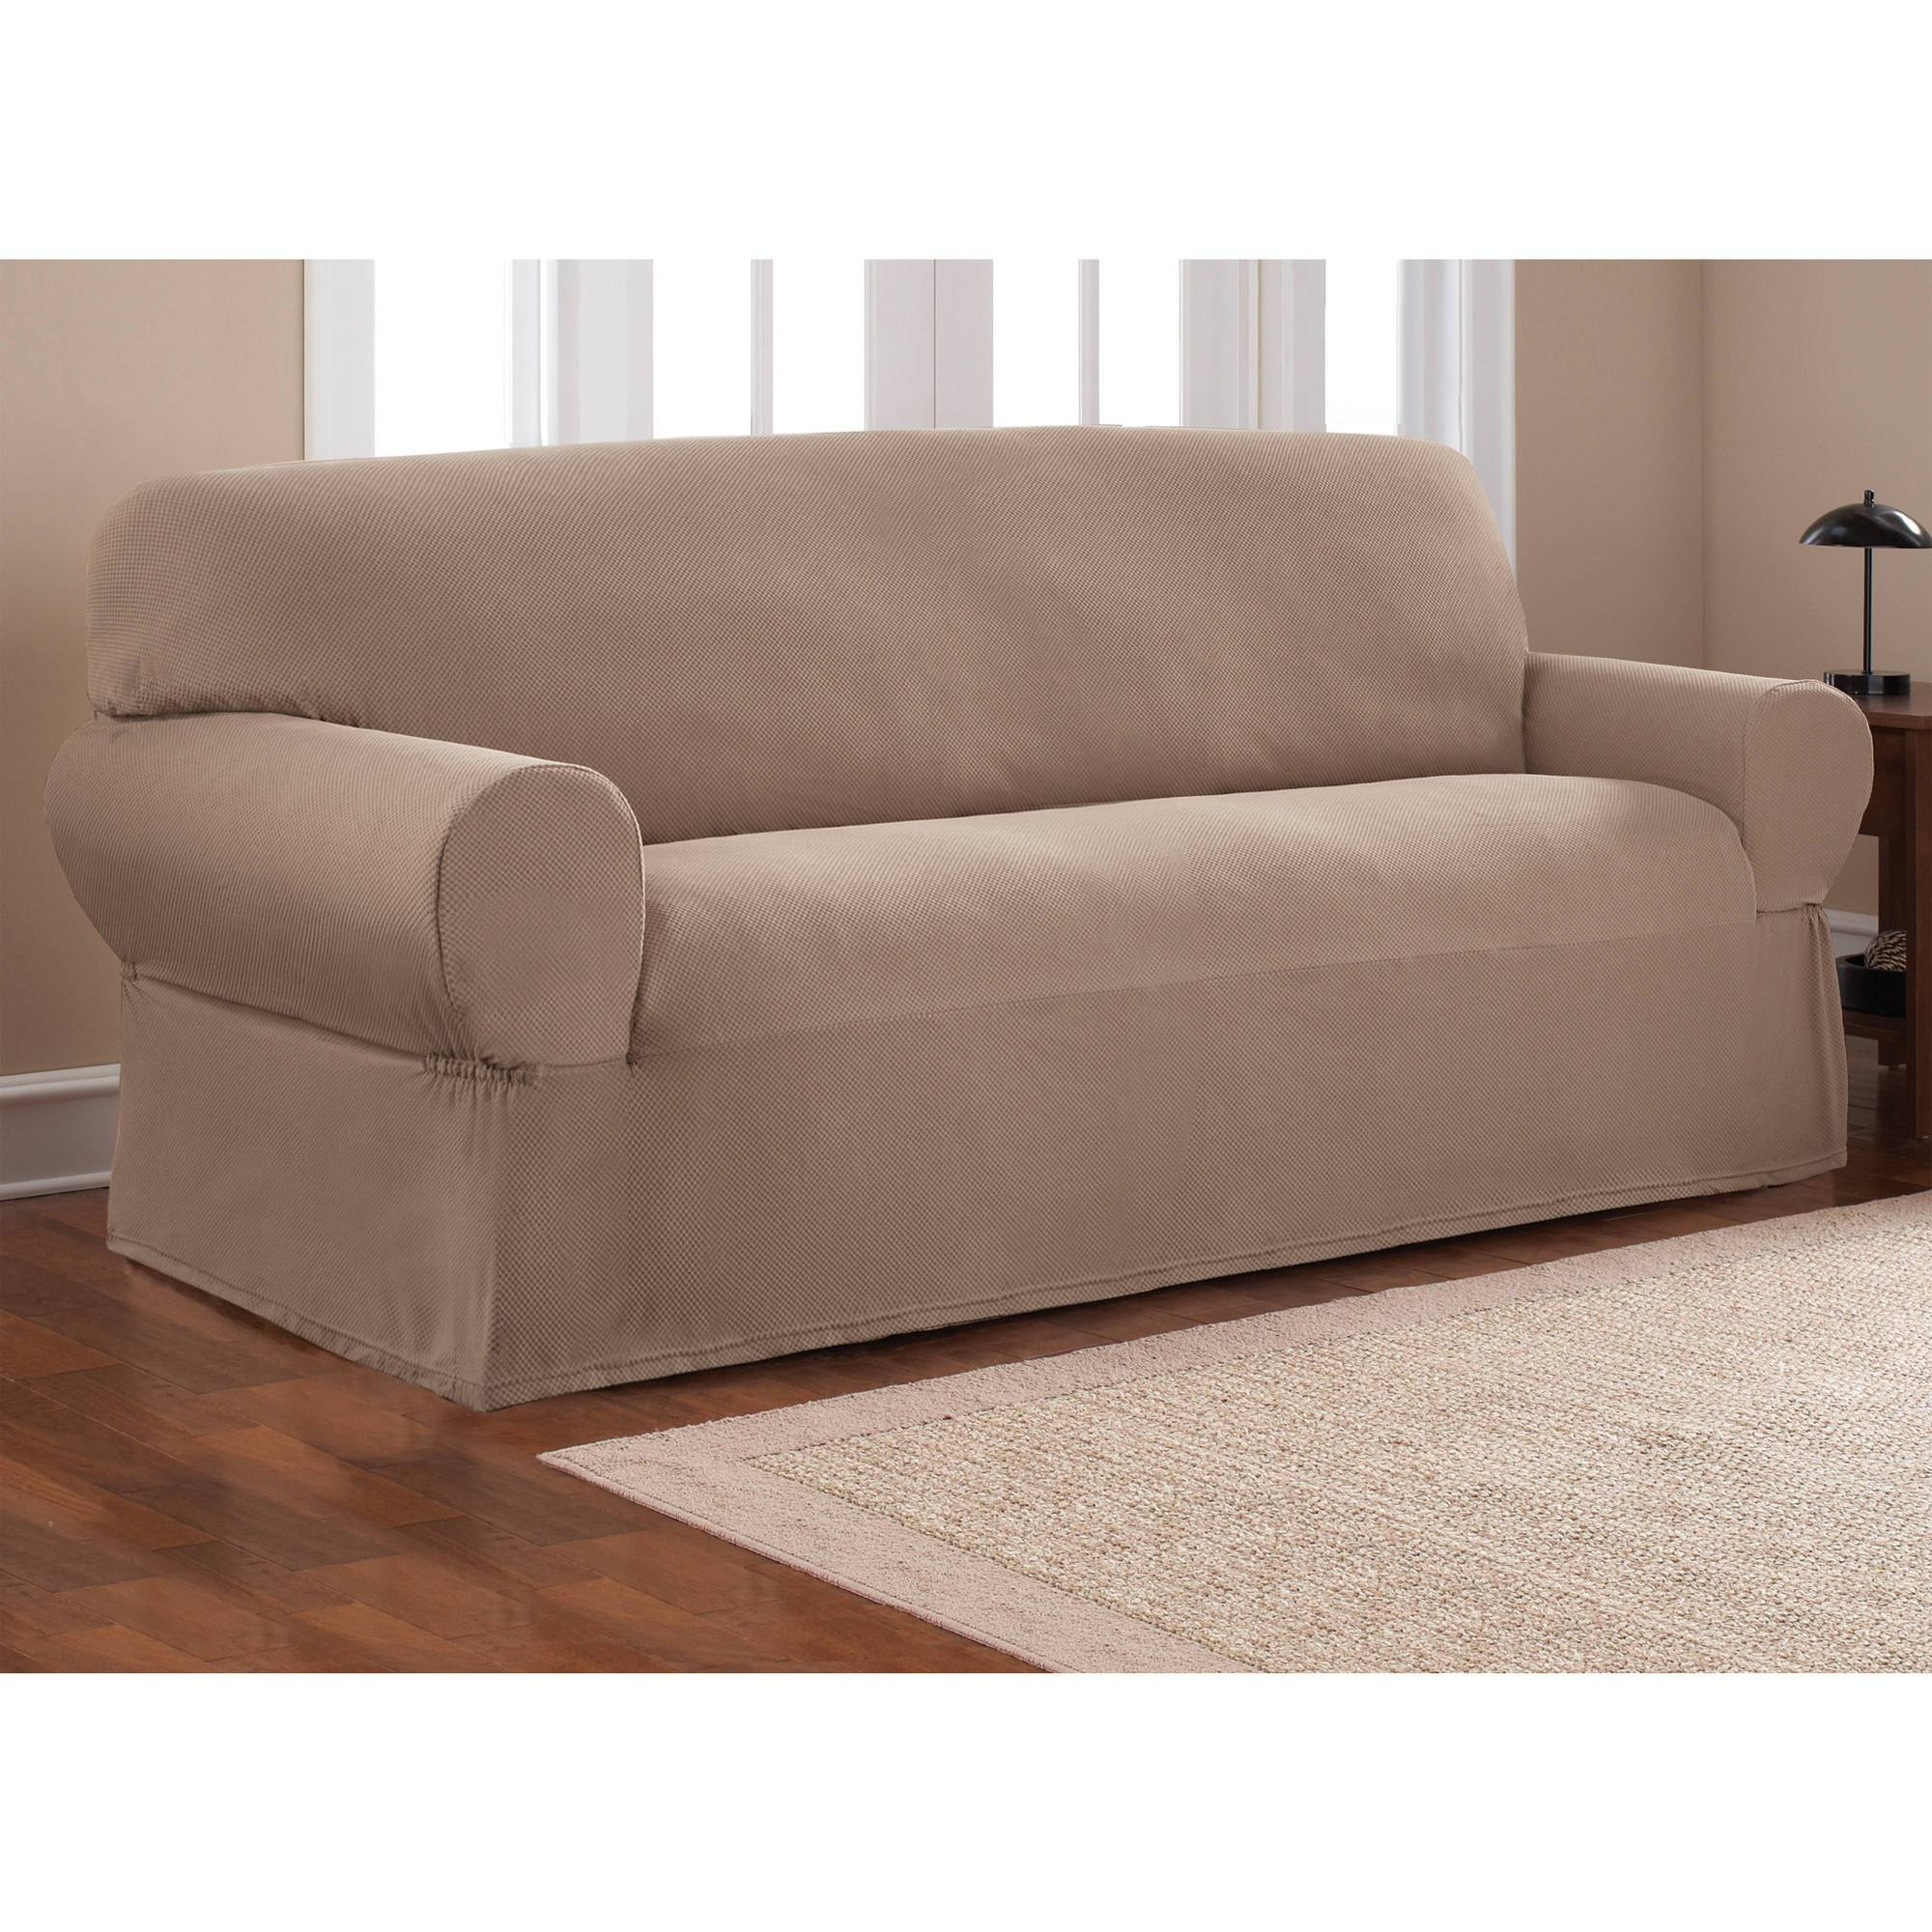 Mainstays 1 Piece Stretch Fabric Sofa Slipcover – Walmart Inside Slipcovers For 3 Cushion Sofas (View 8 of 15)